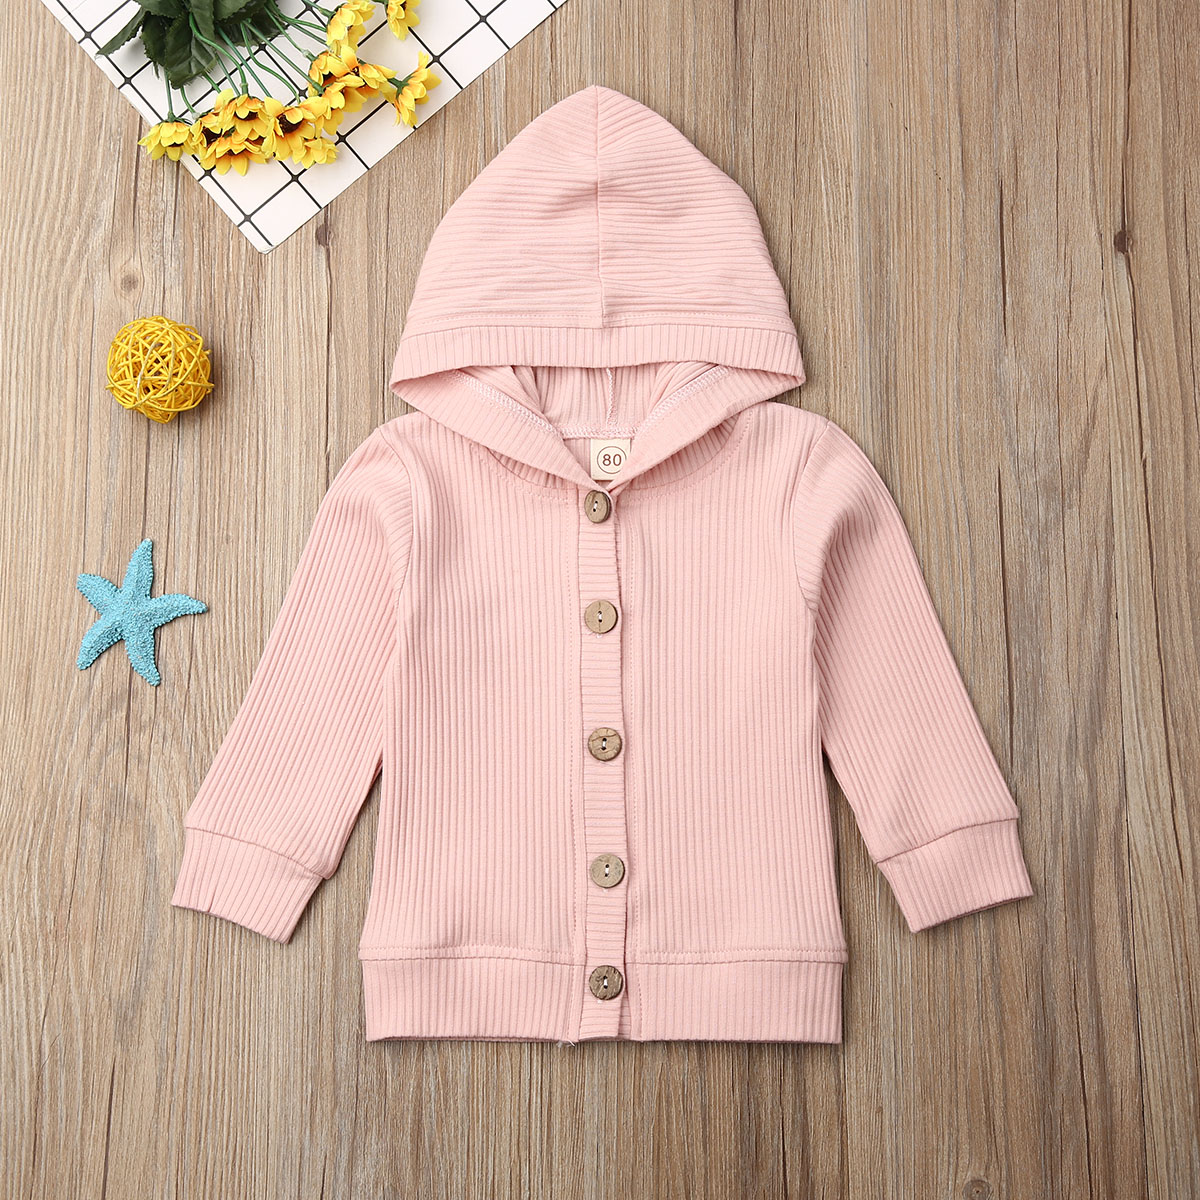 Pudcoco Newborn Baby Girl Clothes Long Sleeve Solid Color Knitted Cotton Button Hooded Warm Coat Outwear Clothes Autumn